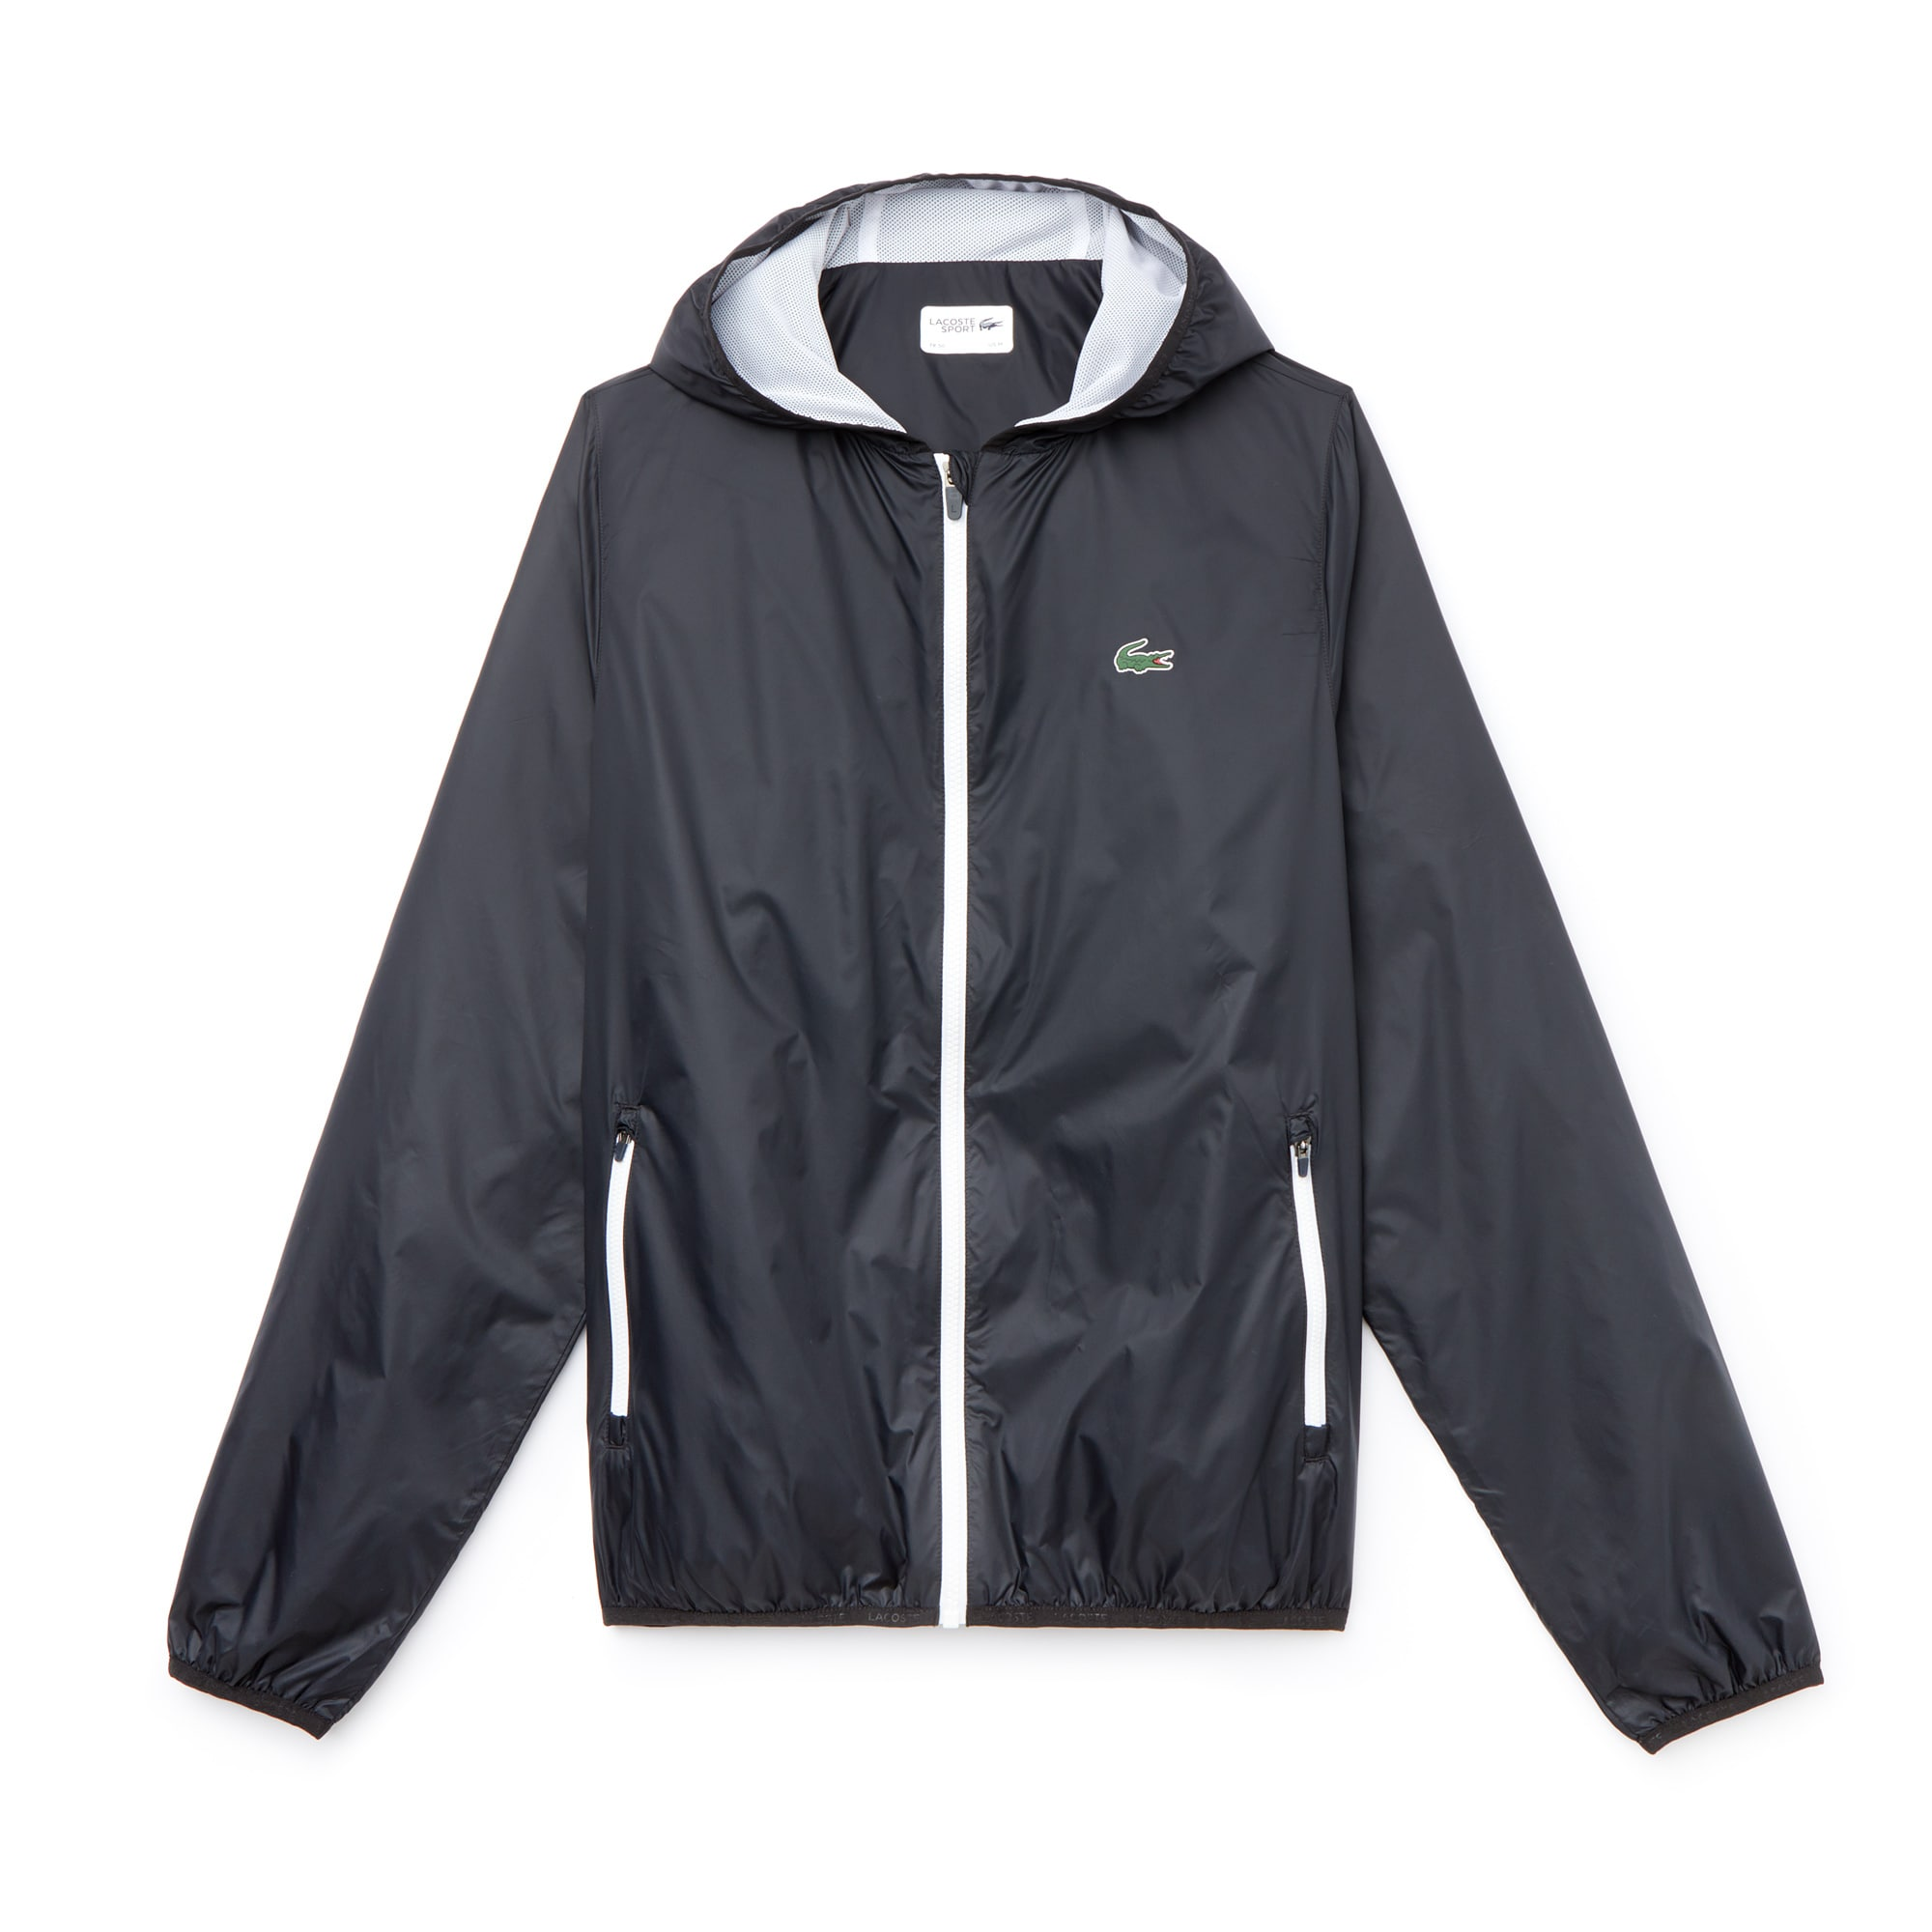 Men's SPORT Hooded Technical Tennis Jacket